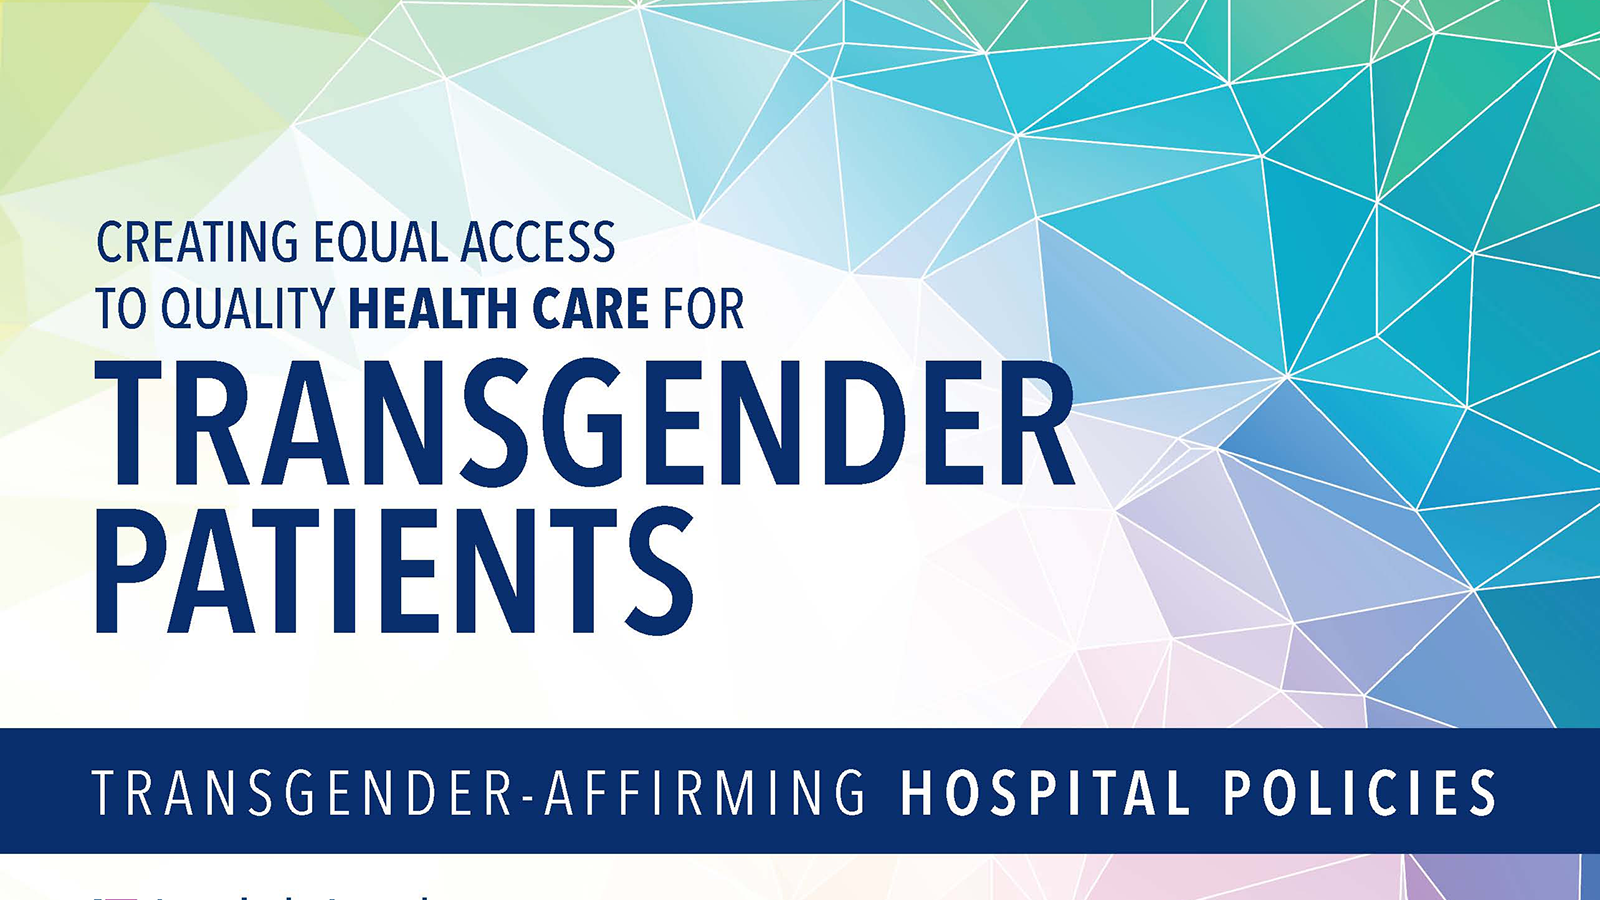 New Guide on Transgender-Affirming Hospital Policies